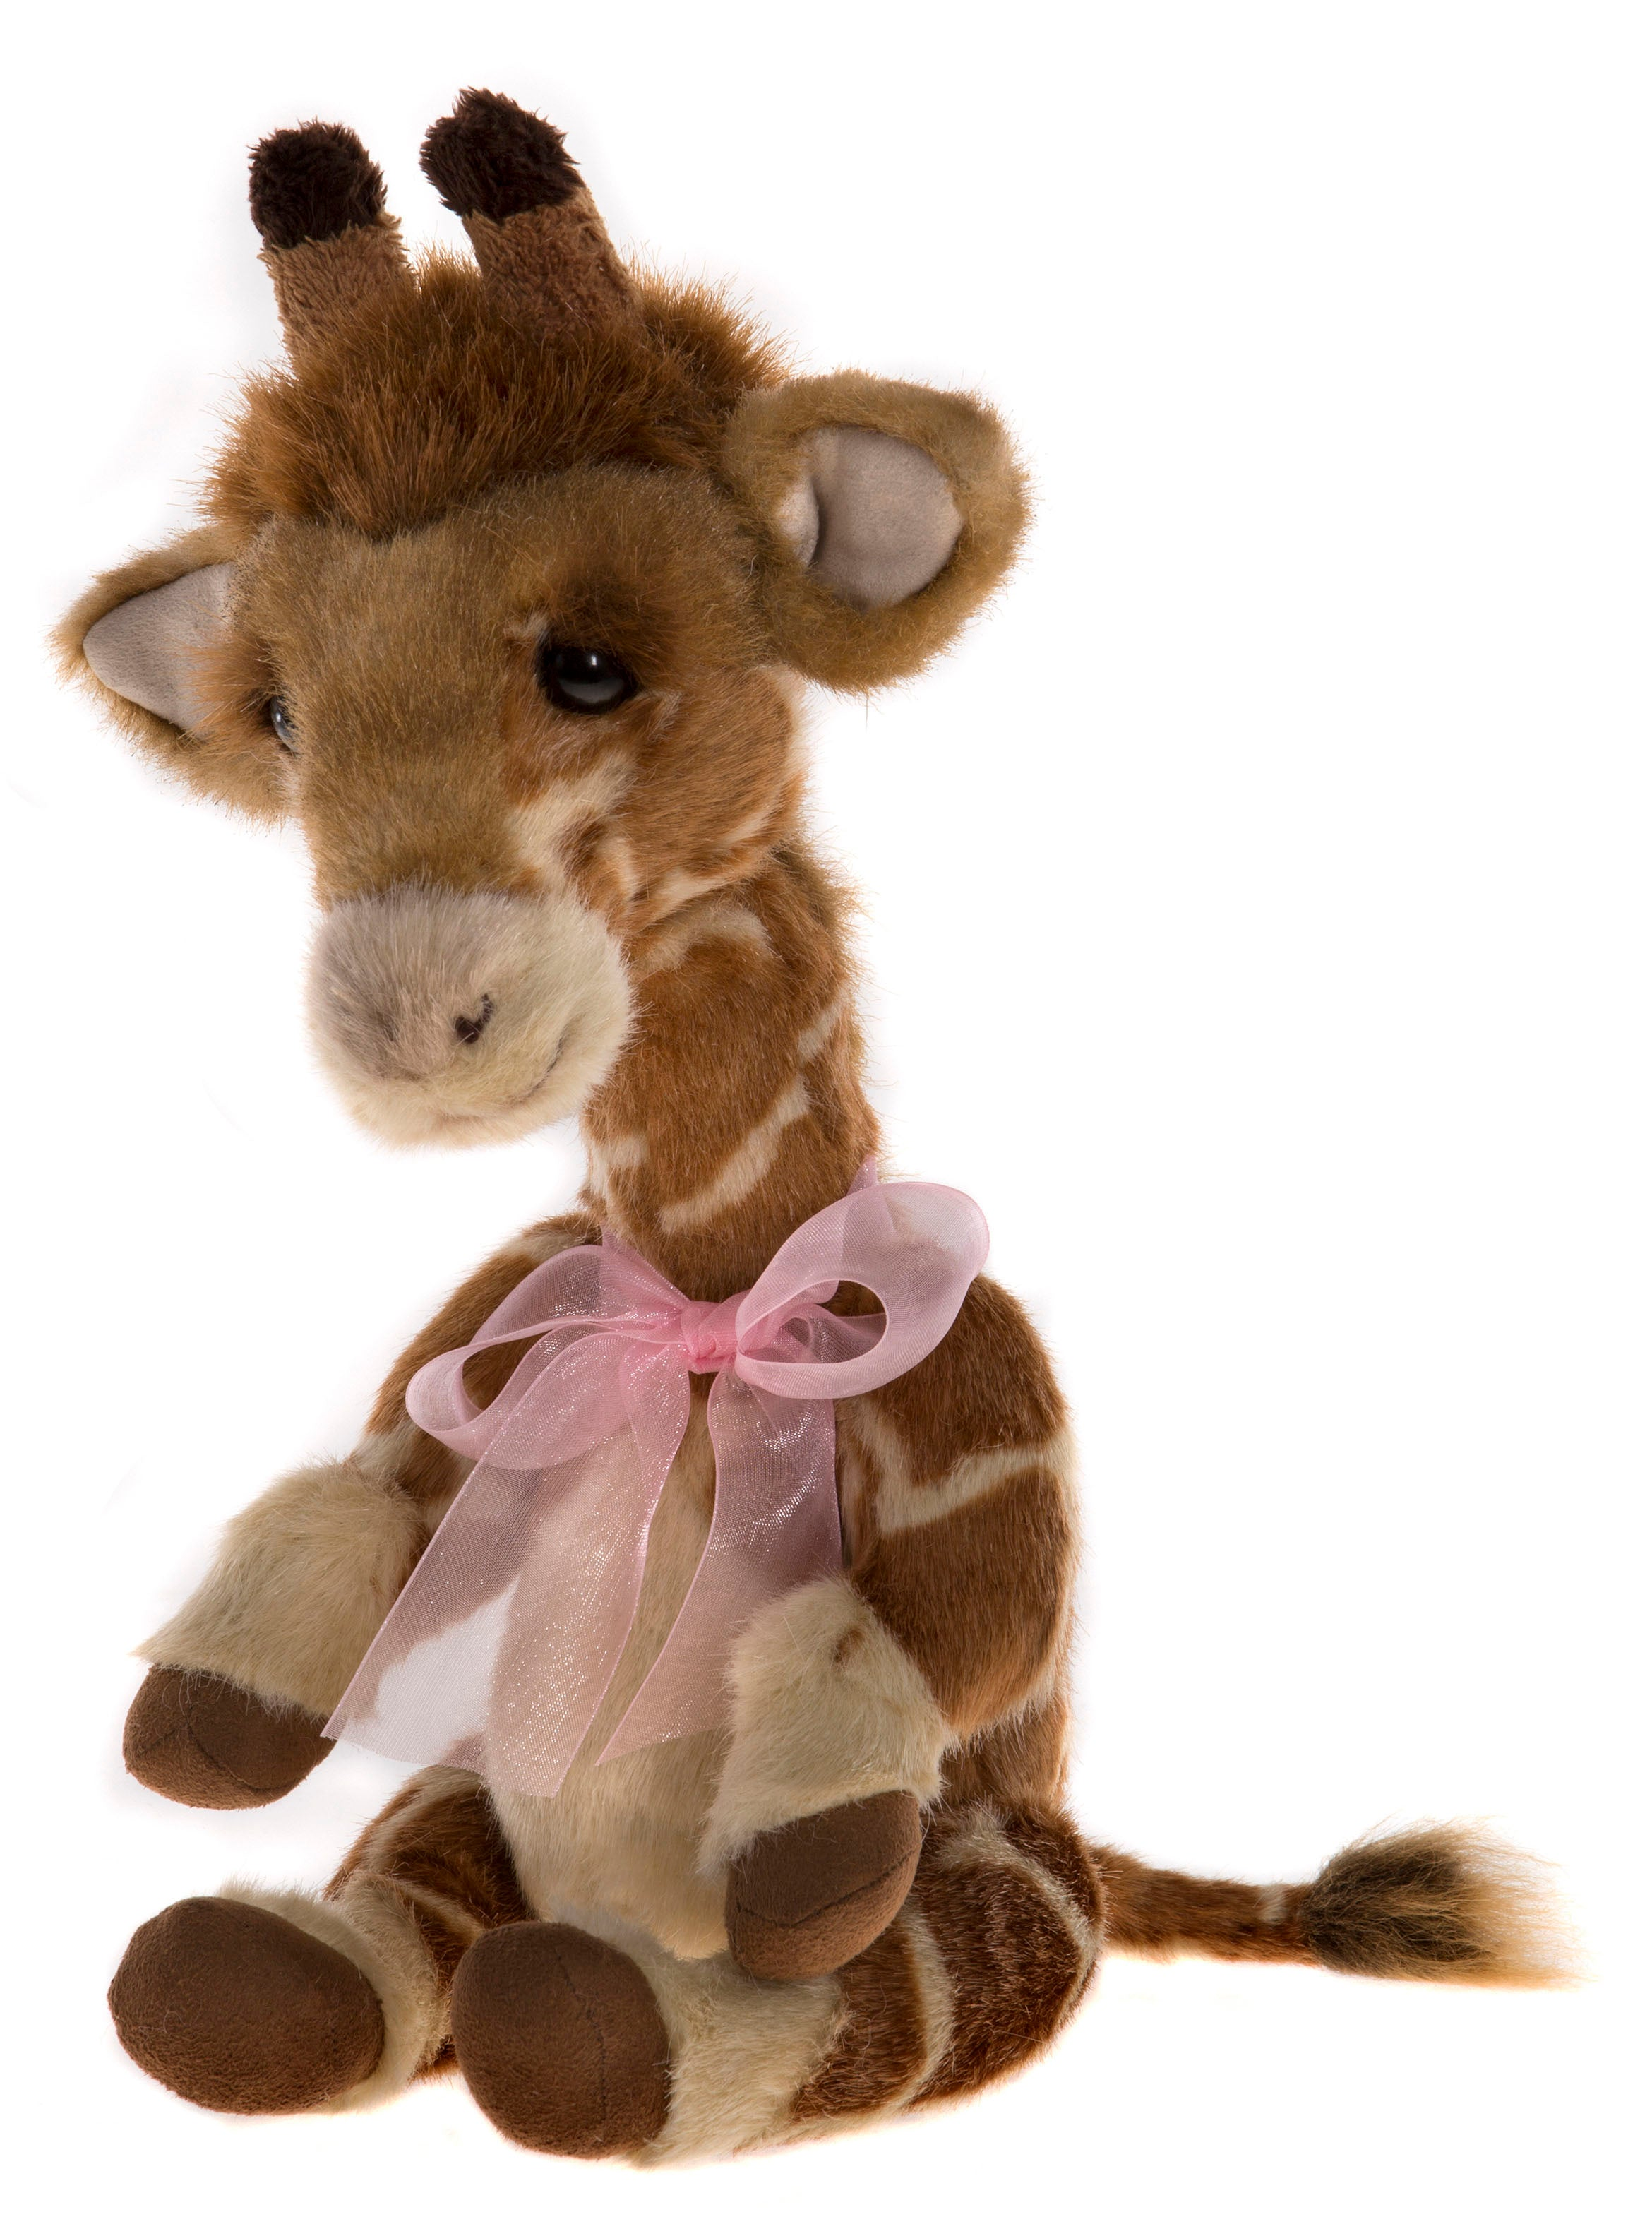 Stretch Giraffe - Jointed Stuffed Animal